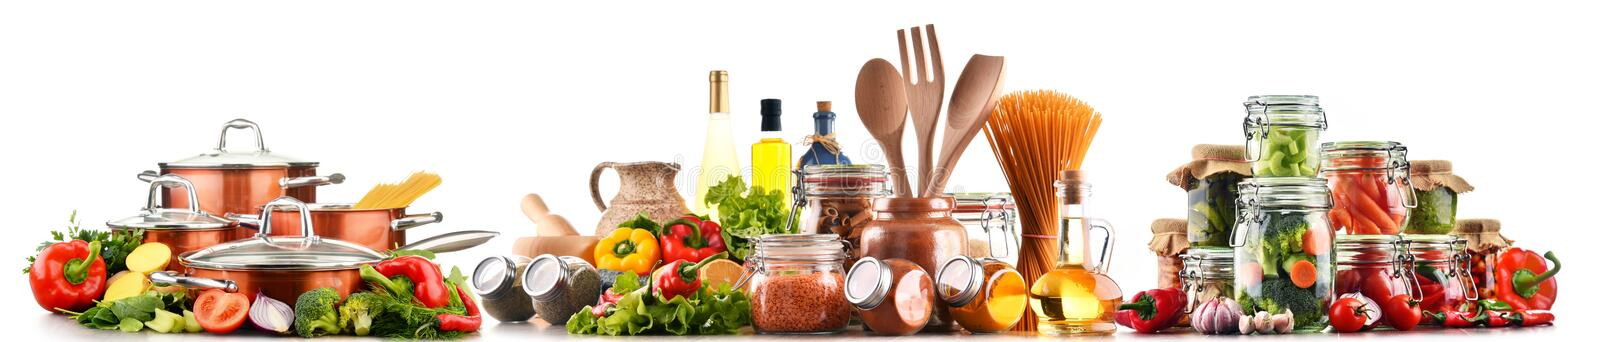 Assorted food products and kitchen utensils isolated on white. Background royalty free stock image